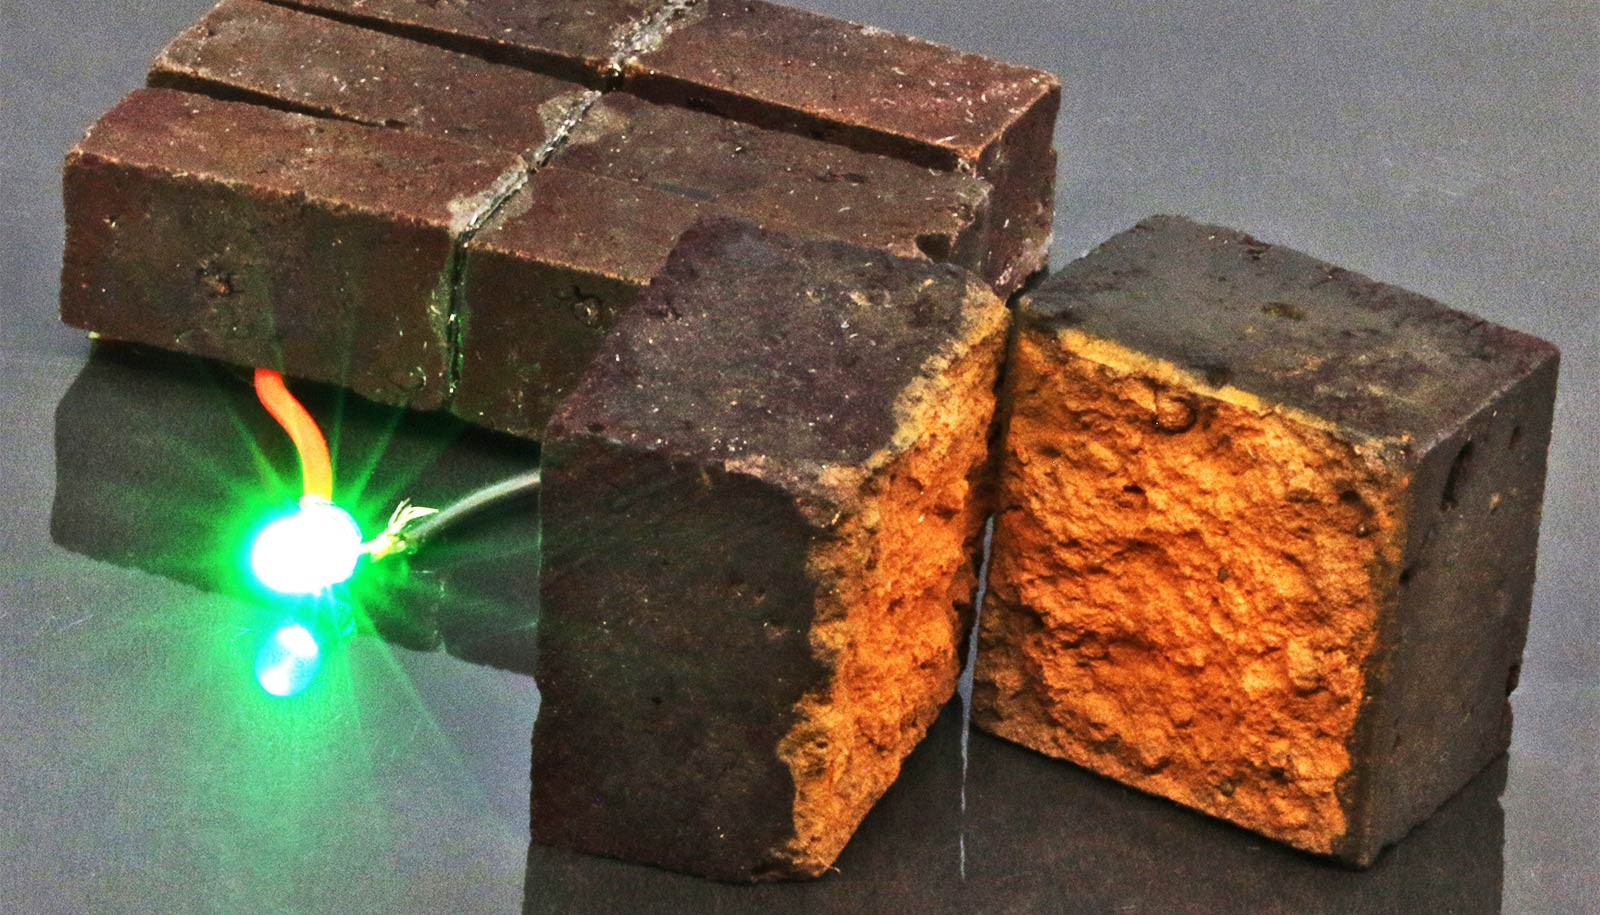 Red bricks can store energy just like batteries - Futurity